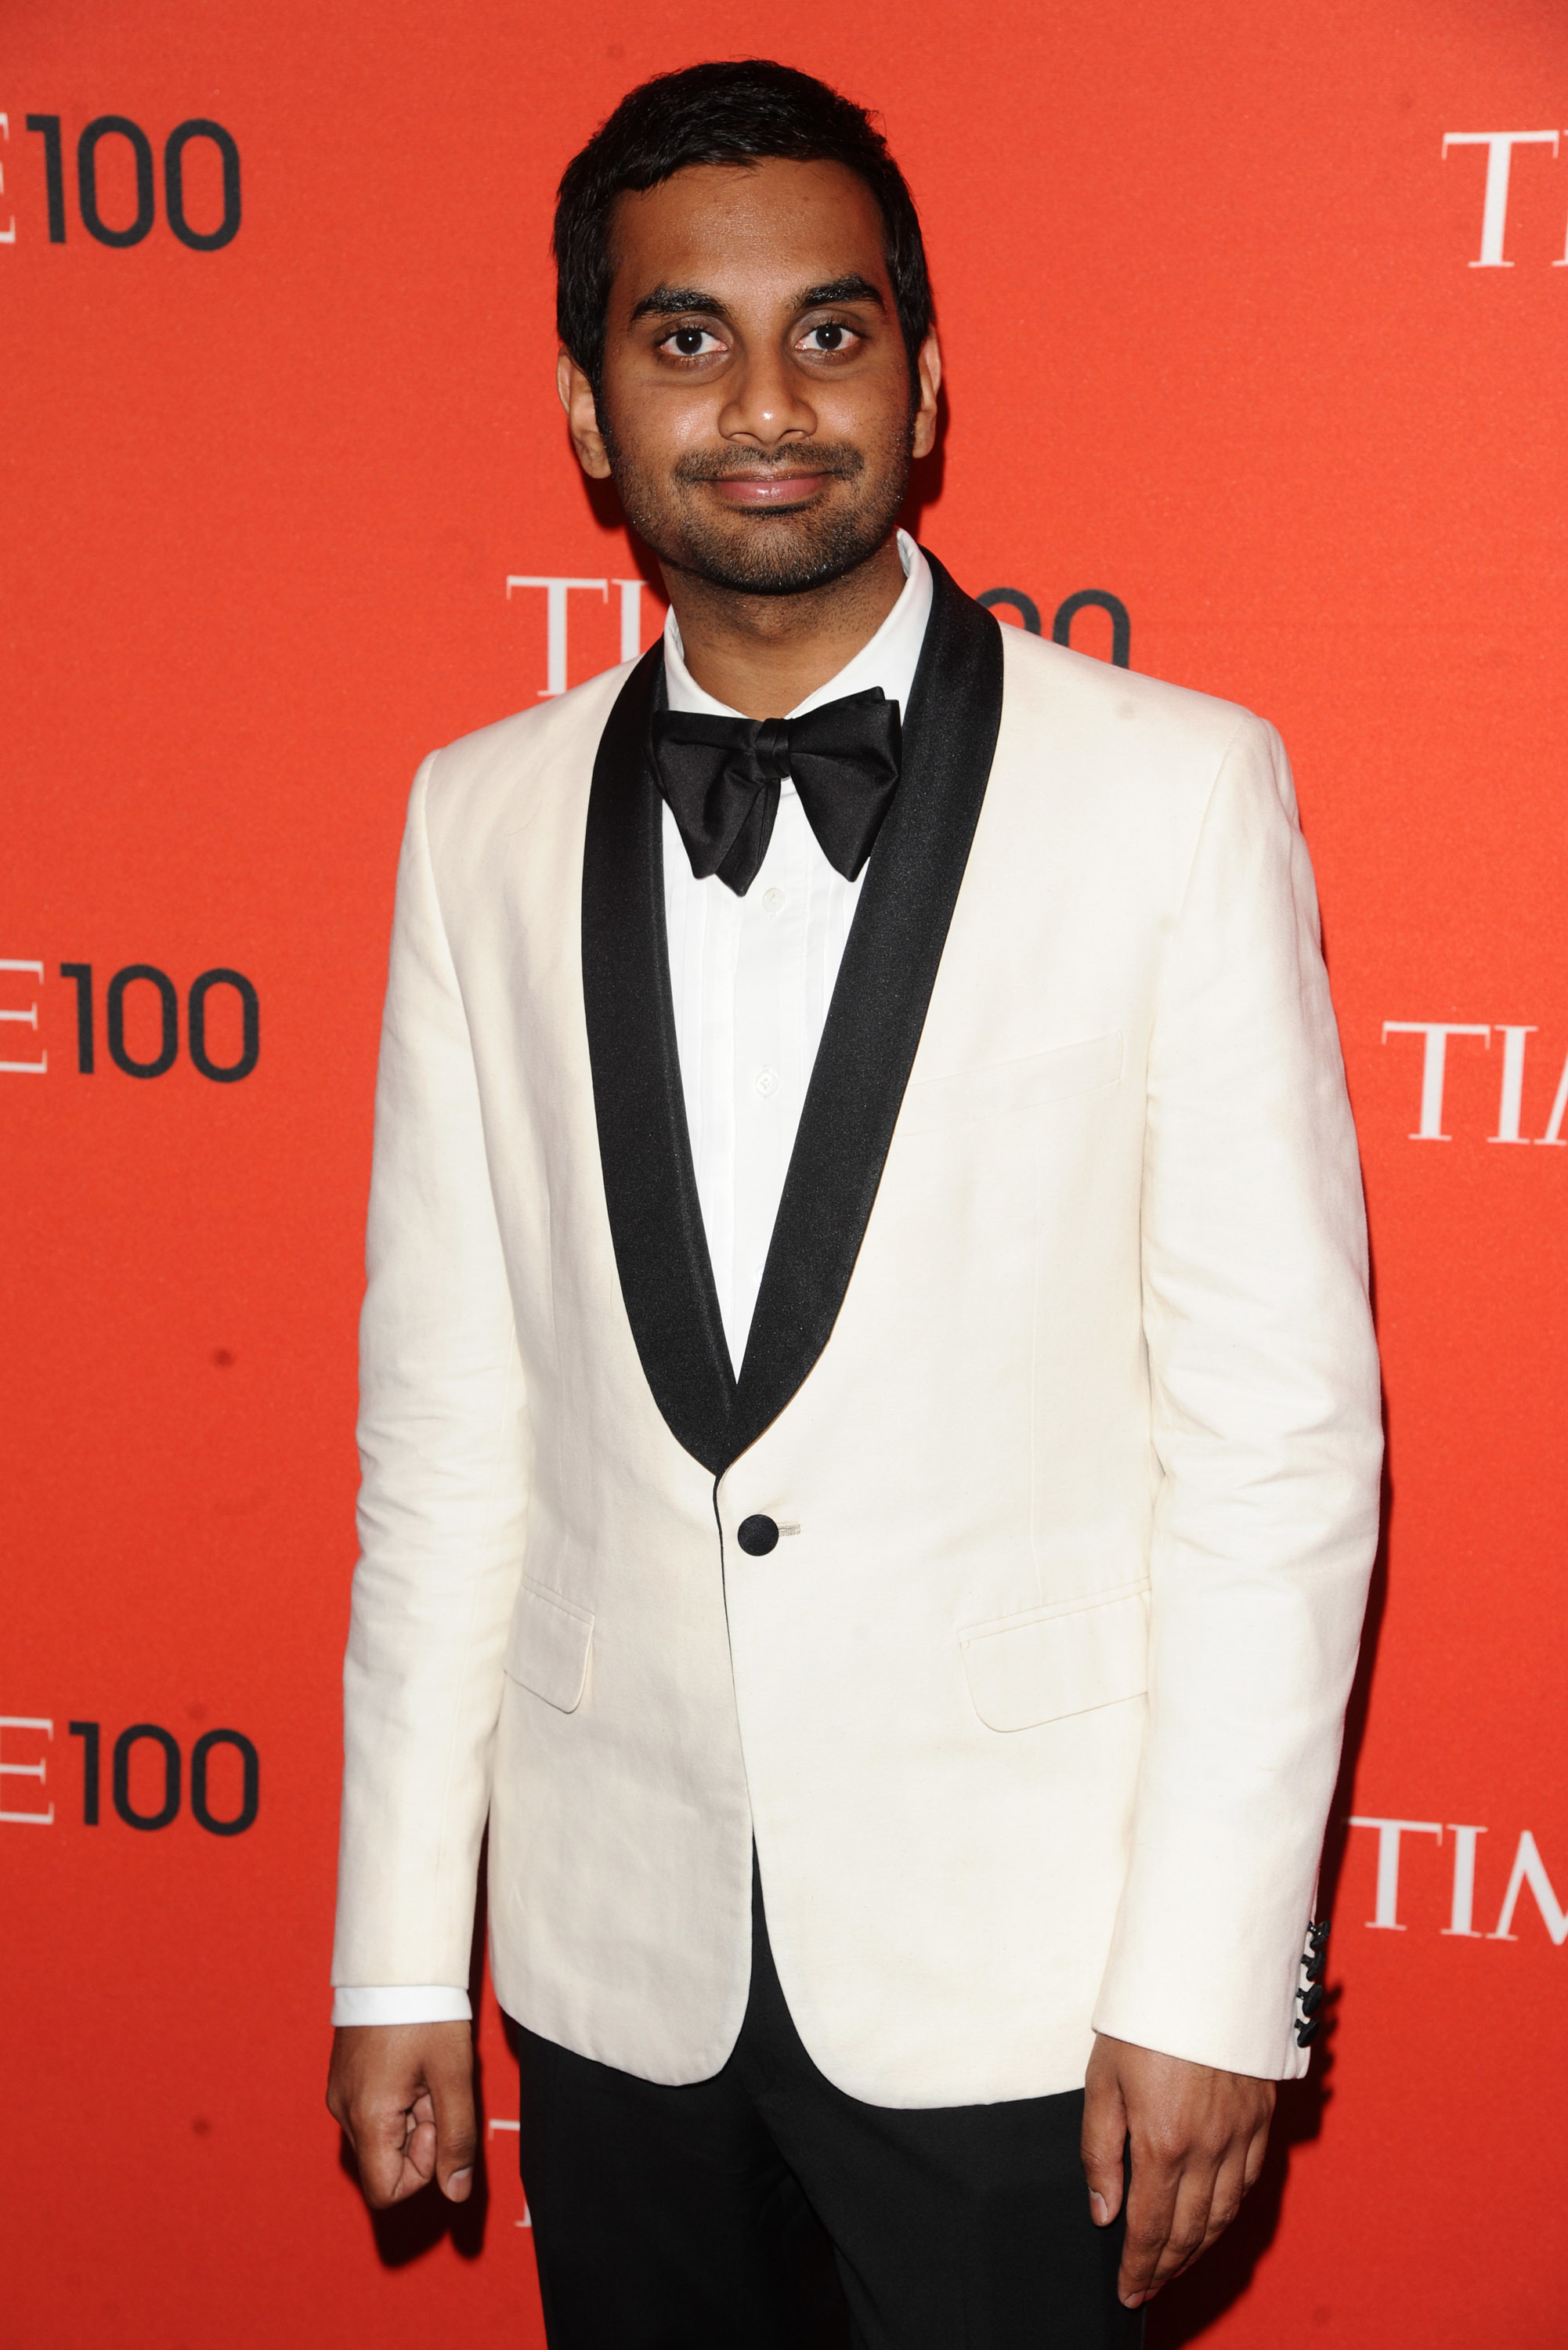 Aziz Ansari from South Carolina